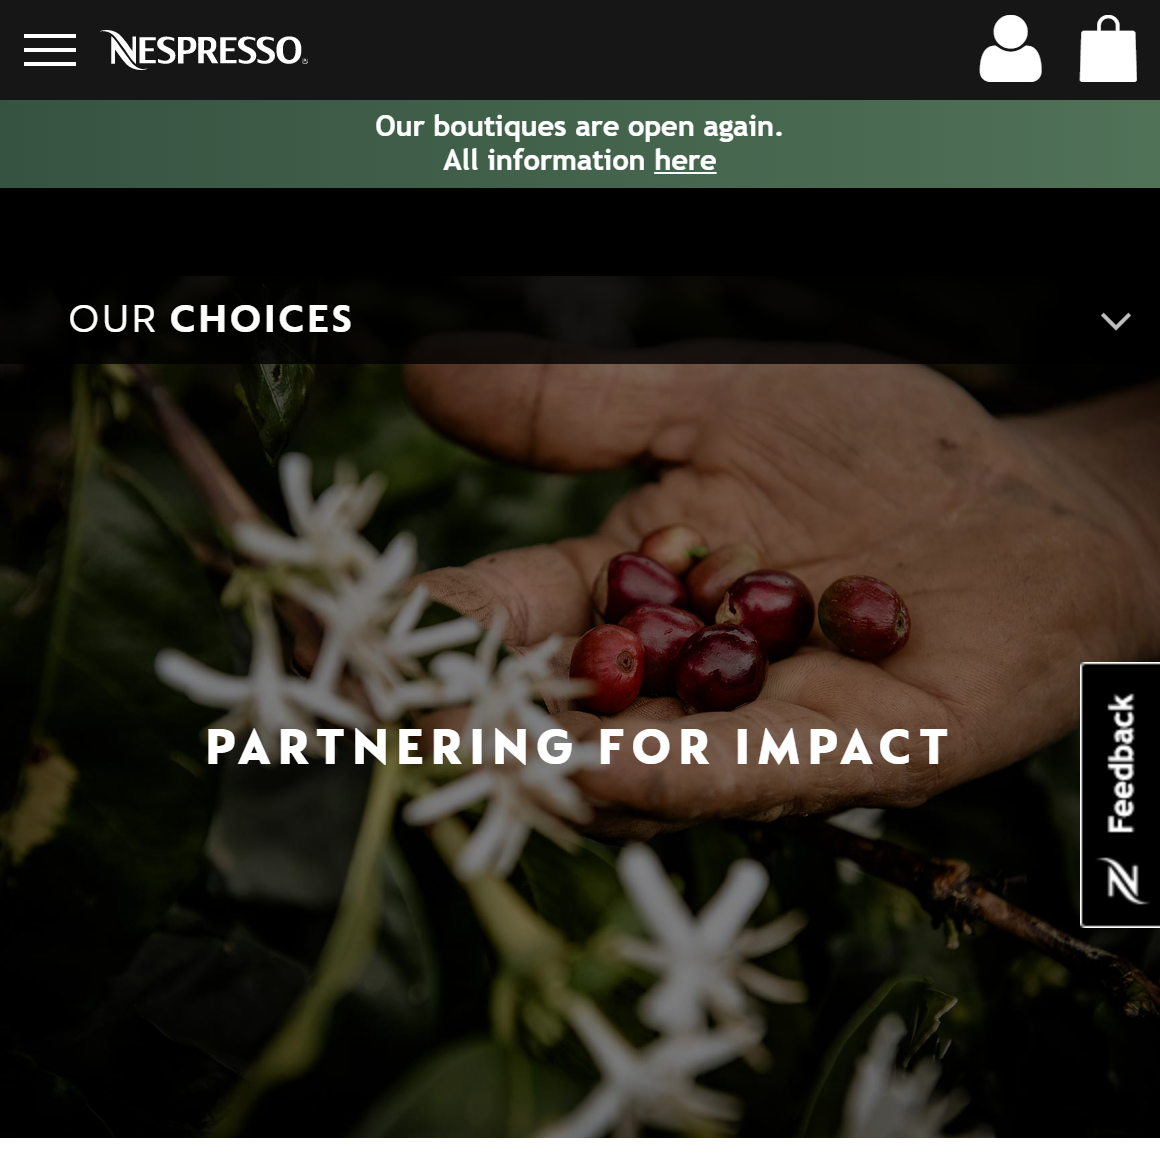 Nespresso landingpage for partnerships